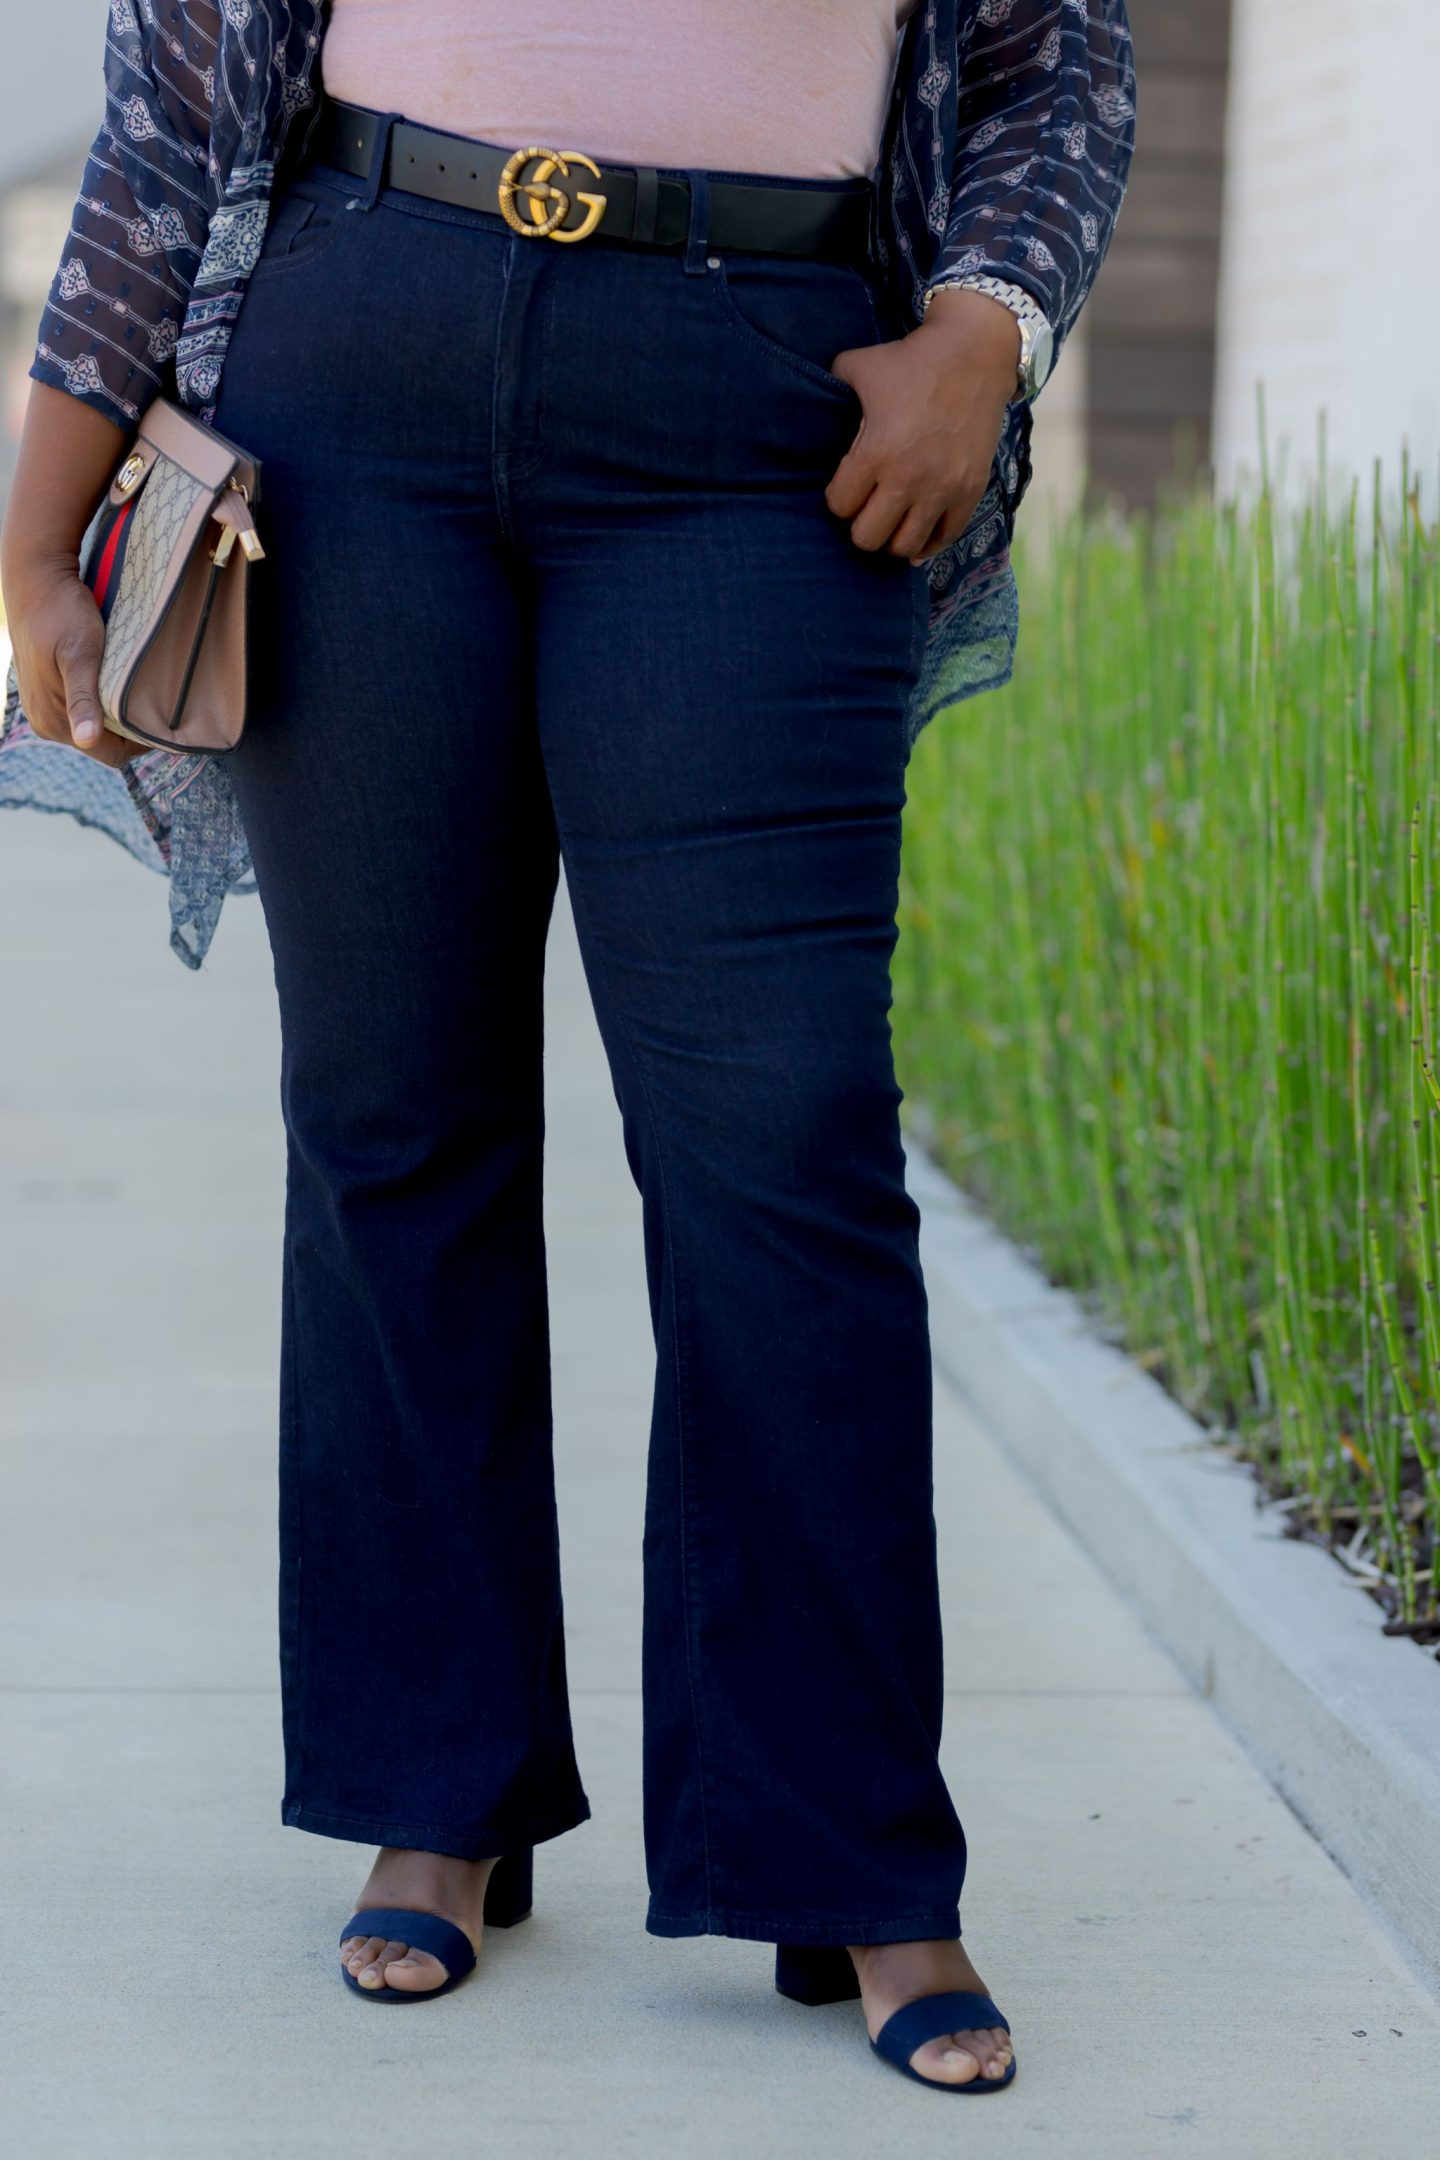 Influencer Half body picture of Nikki Free wearing Lane Bryant Flex Magic Waistband Jean